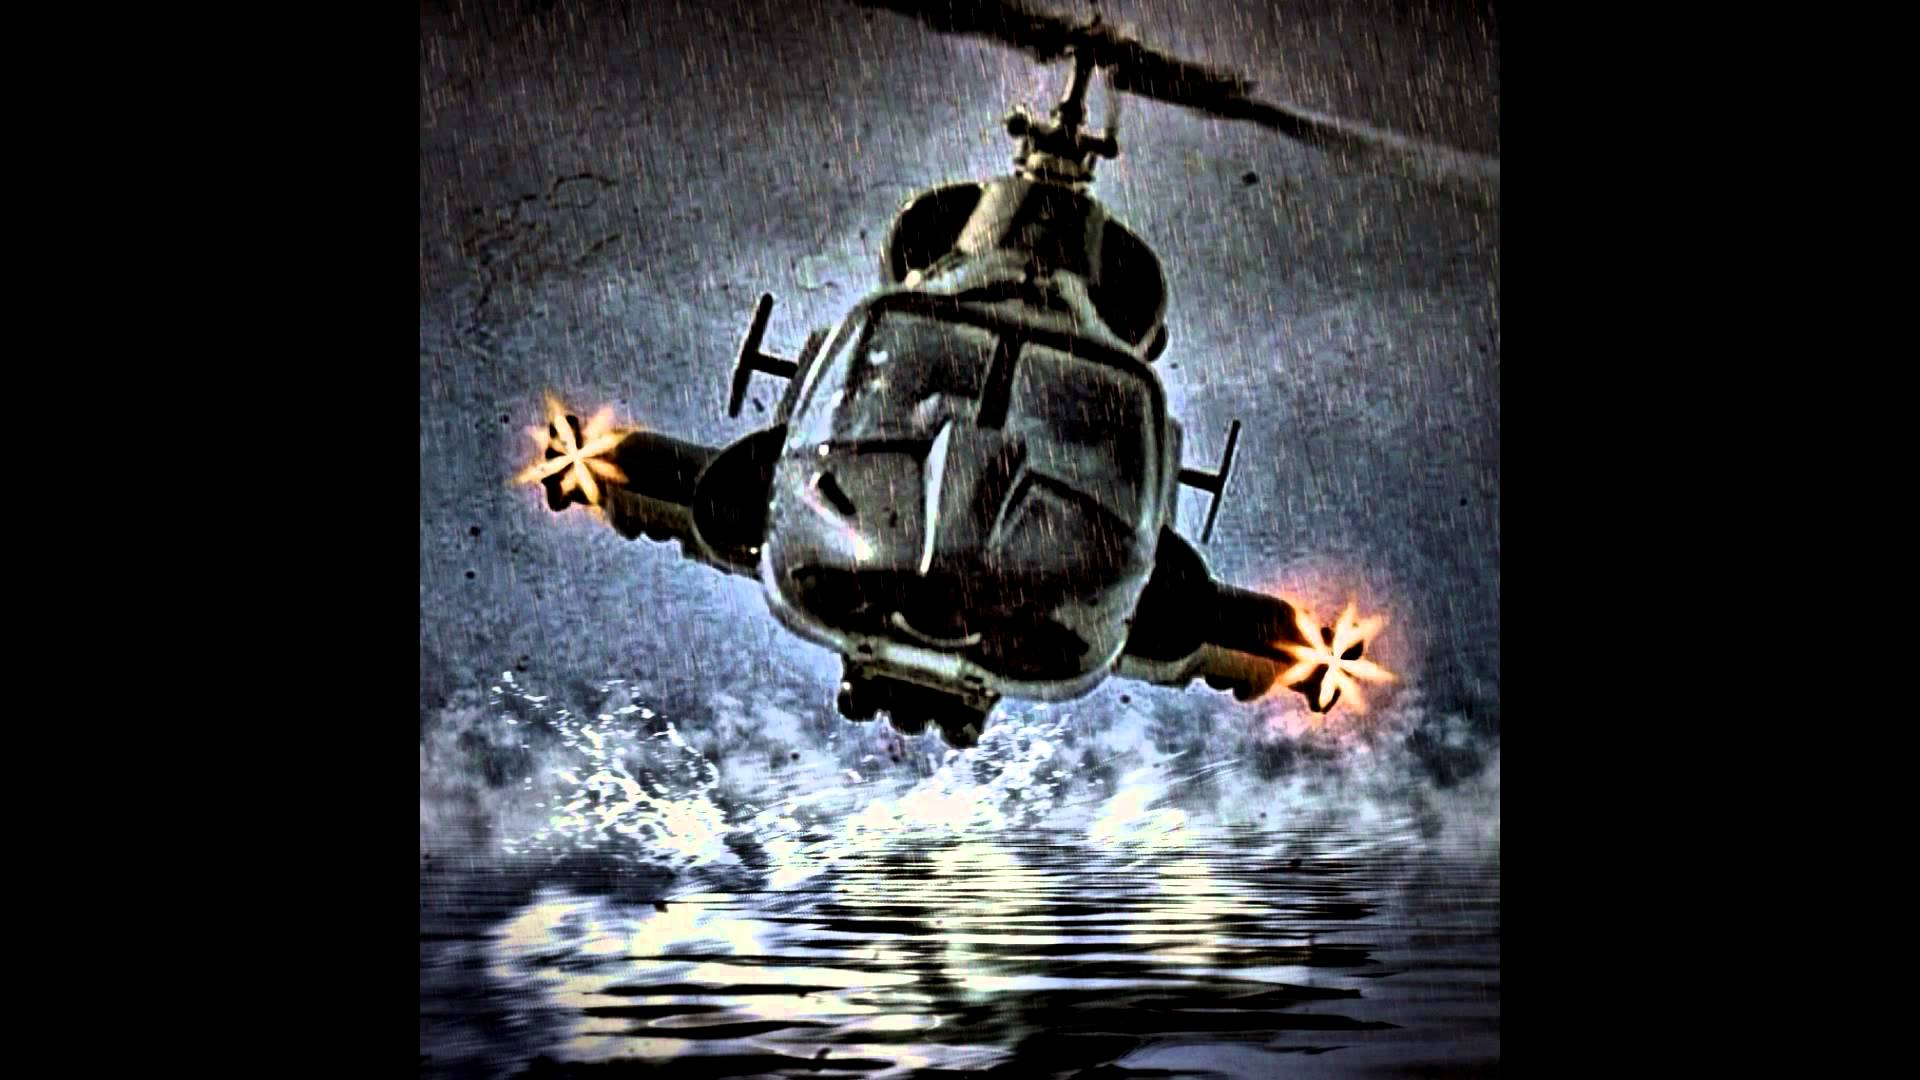 helicopter tv show airwolf with Airwolf Wallpapers on Watch additionally Tragic Downfall Of S Airwolf Star Who Is Recovering From Alcohol Problems Leg  utated Twice in addition Airwolf Jan Michael Vincent Pictures n 6120082 additionally Knight Rider Vs Airwolf A Guide moreover Airwolf 61020956.